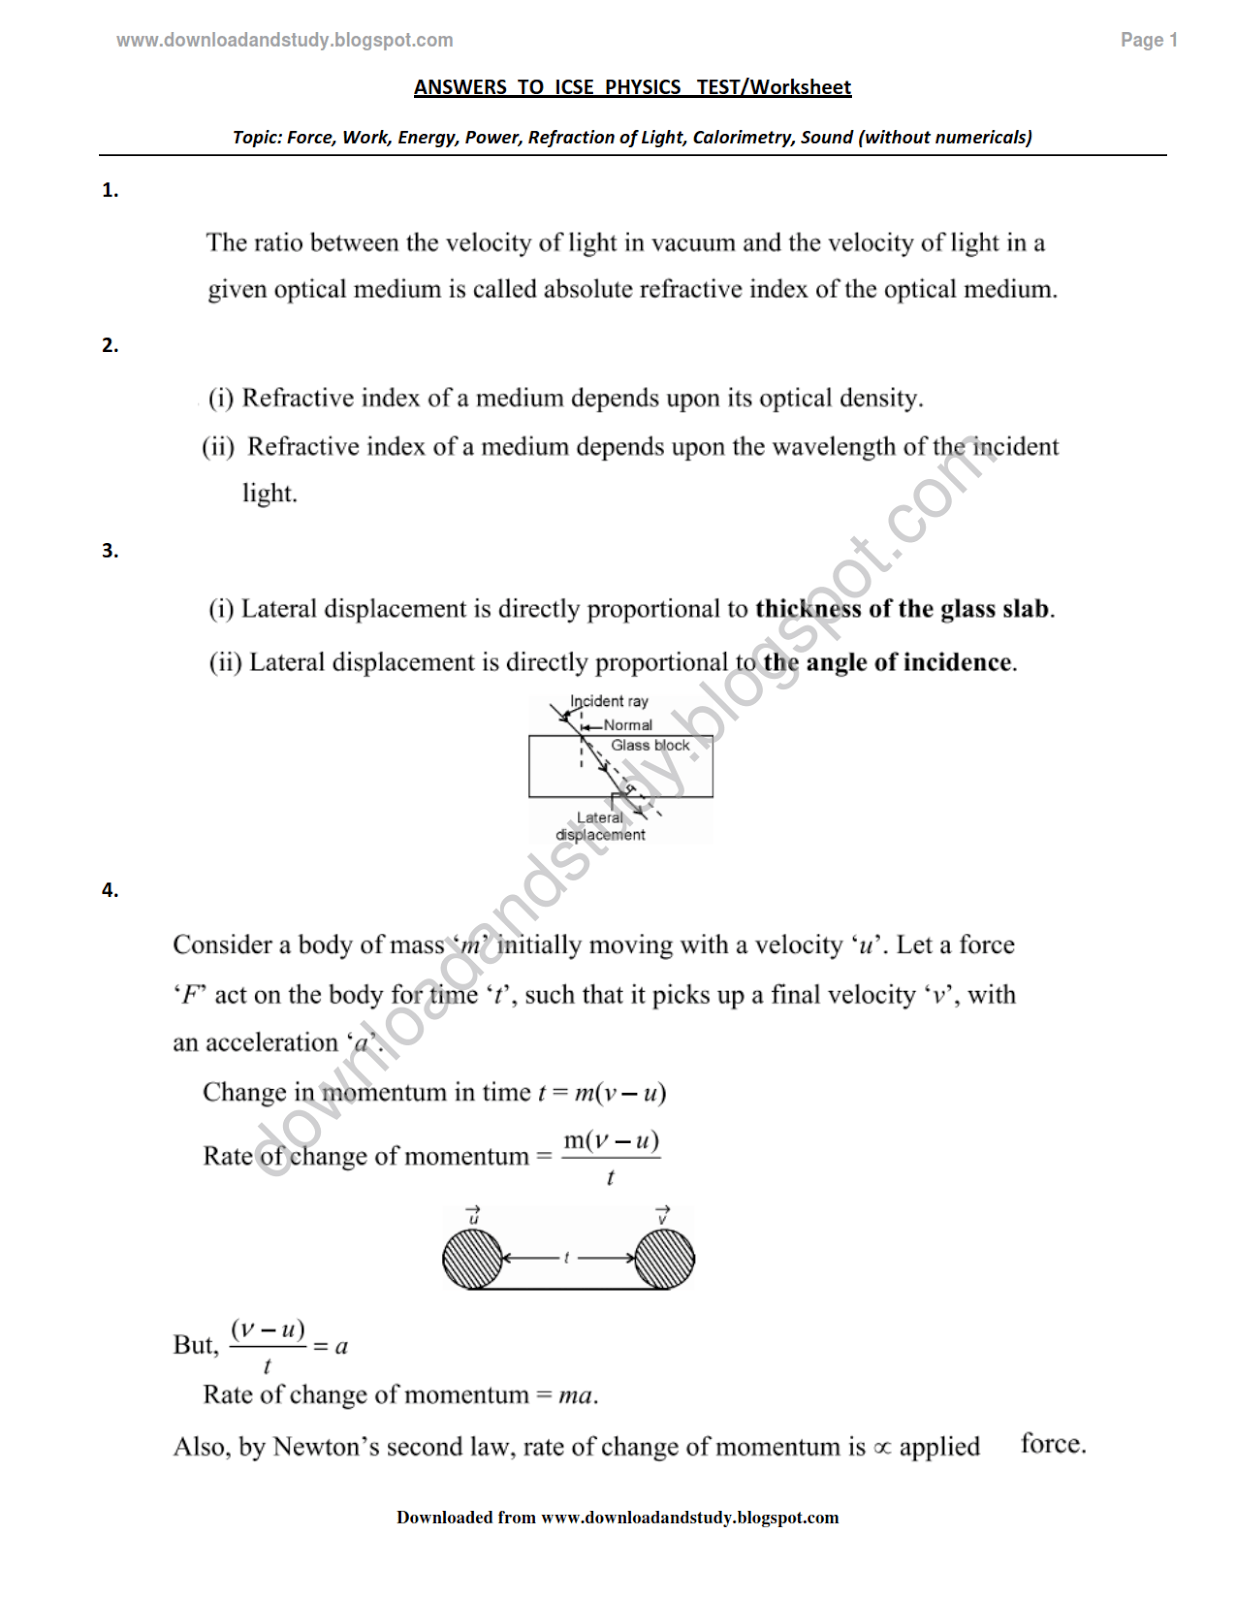 14 Best Images Of Light Refraction Worksheets 3rd Grade